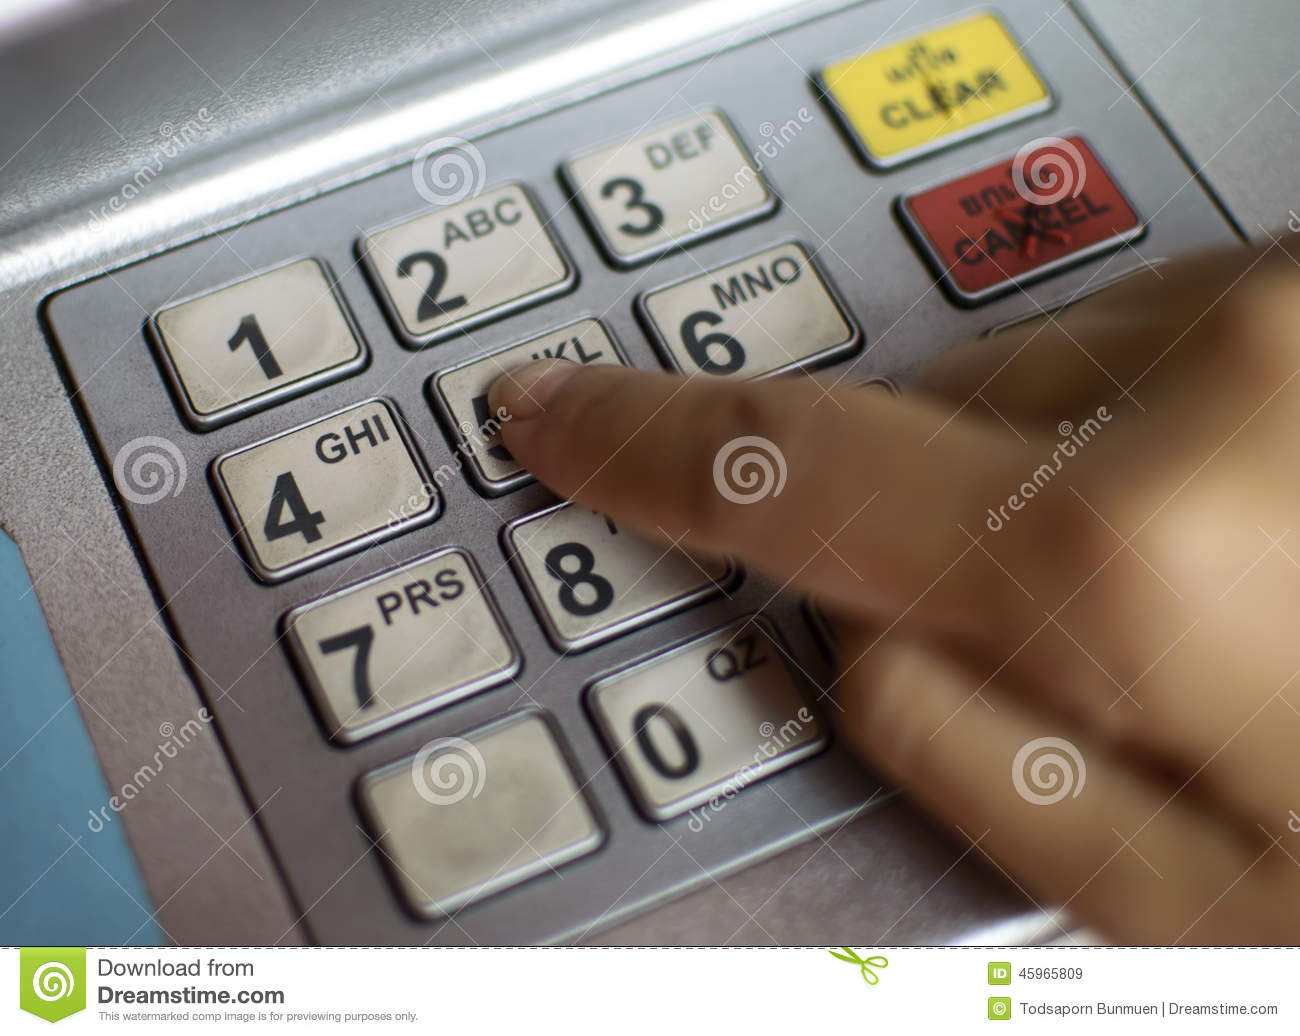 Close-up of hand entering PIN/pass code on ATM/bank machine keypad